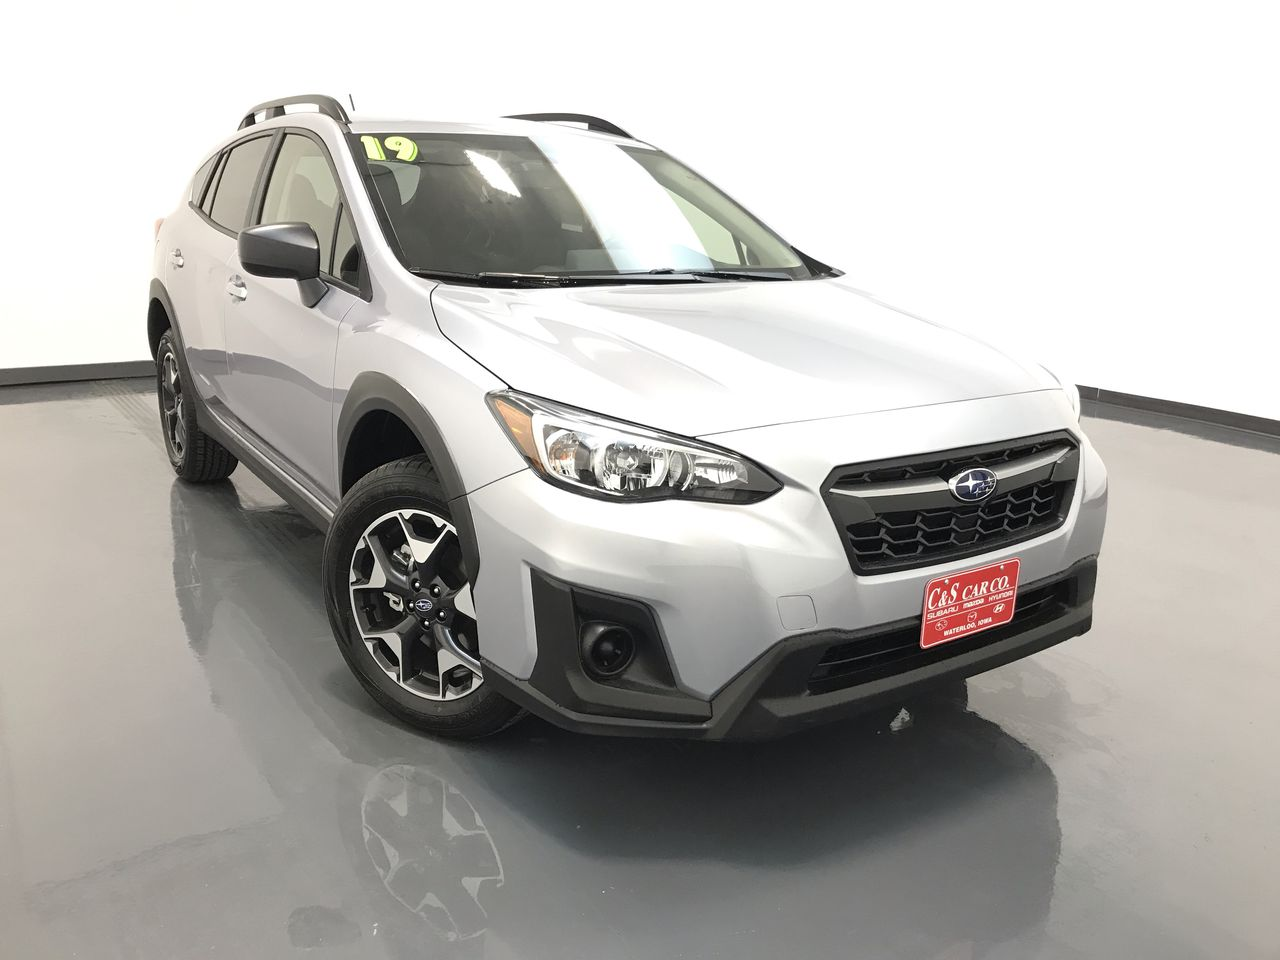 2019 Subaru Crosstrek 2.0i Premium w/Eyesight  - SB8105  - C & S Car Company